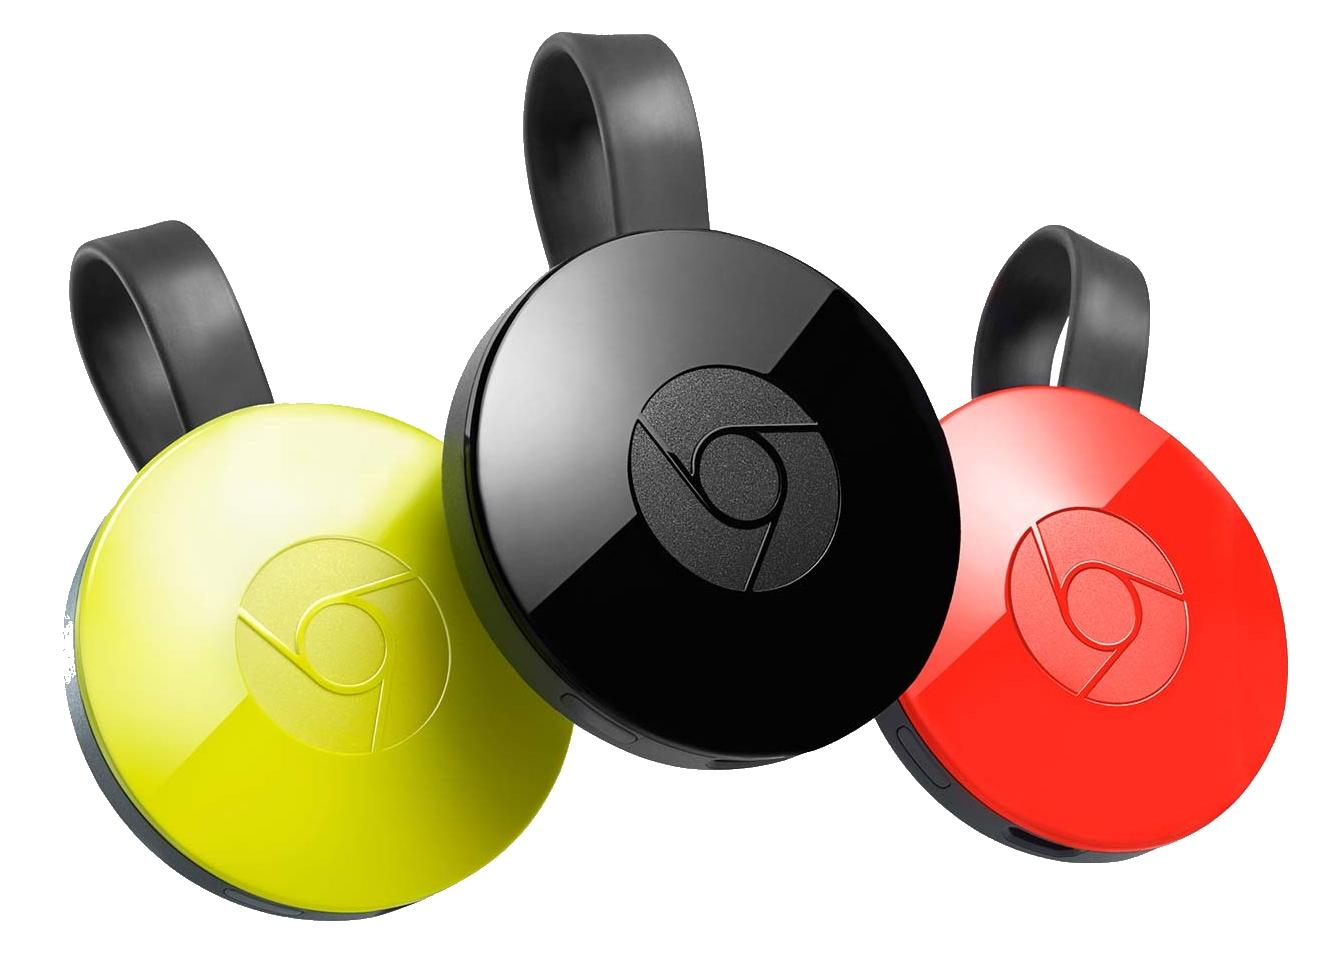 $35.00 New Google Chromecast (2015 Model) Black